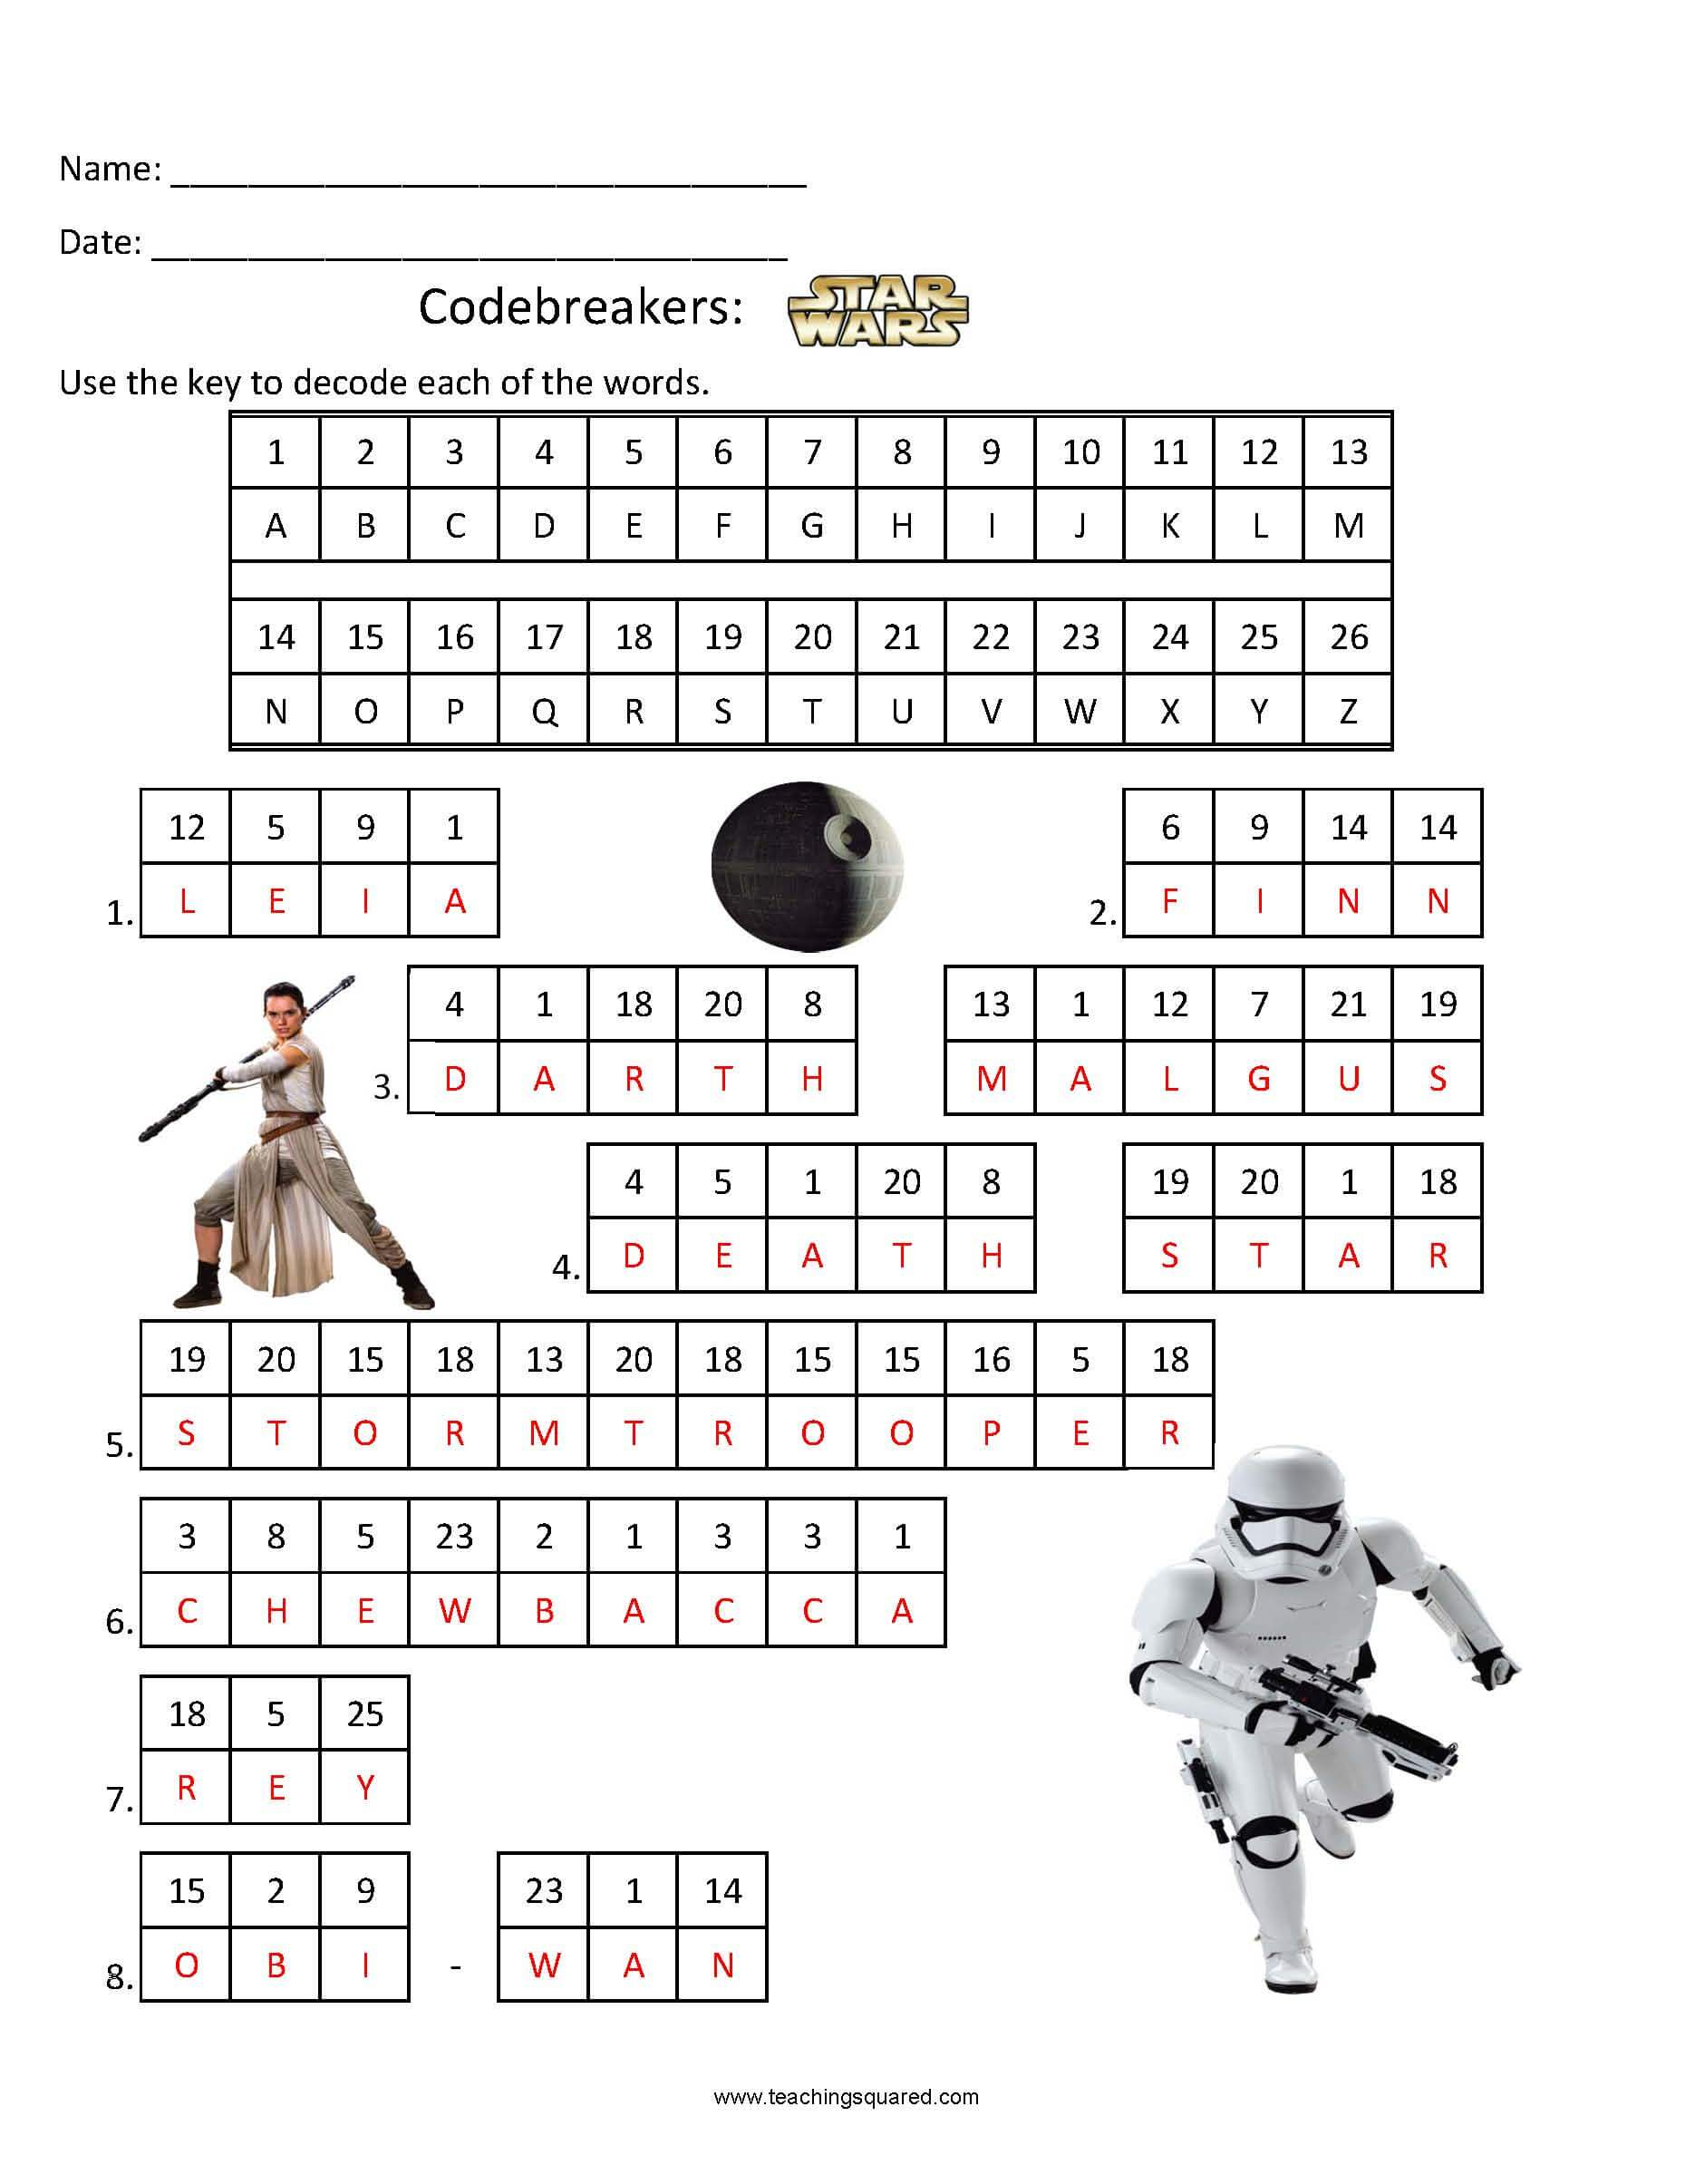 graphic relating to Star Wars Crossword Puzzles Printable identified as Codebreakers- Star Wars 2 - Education Squared